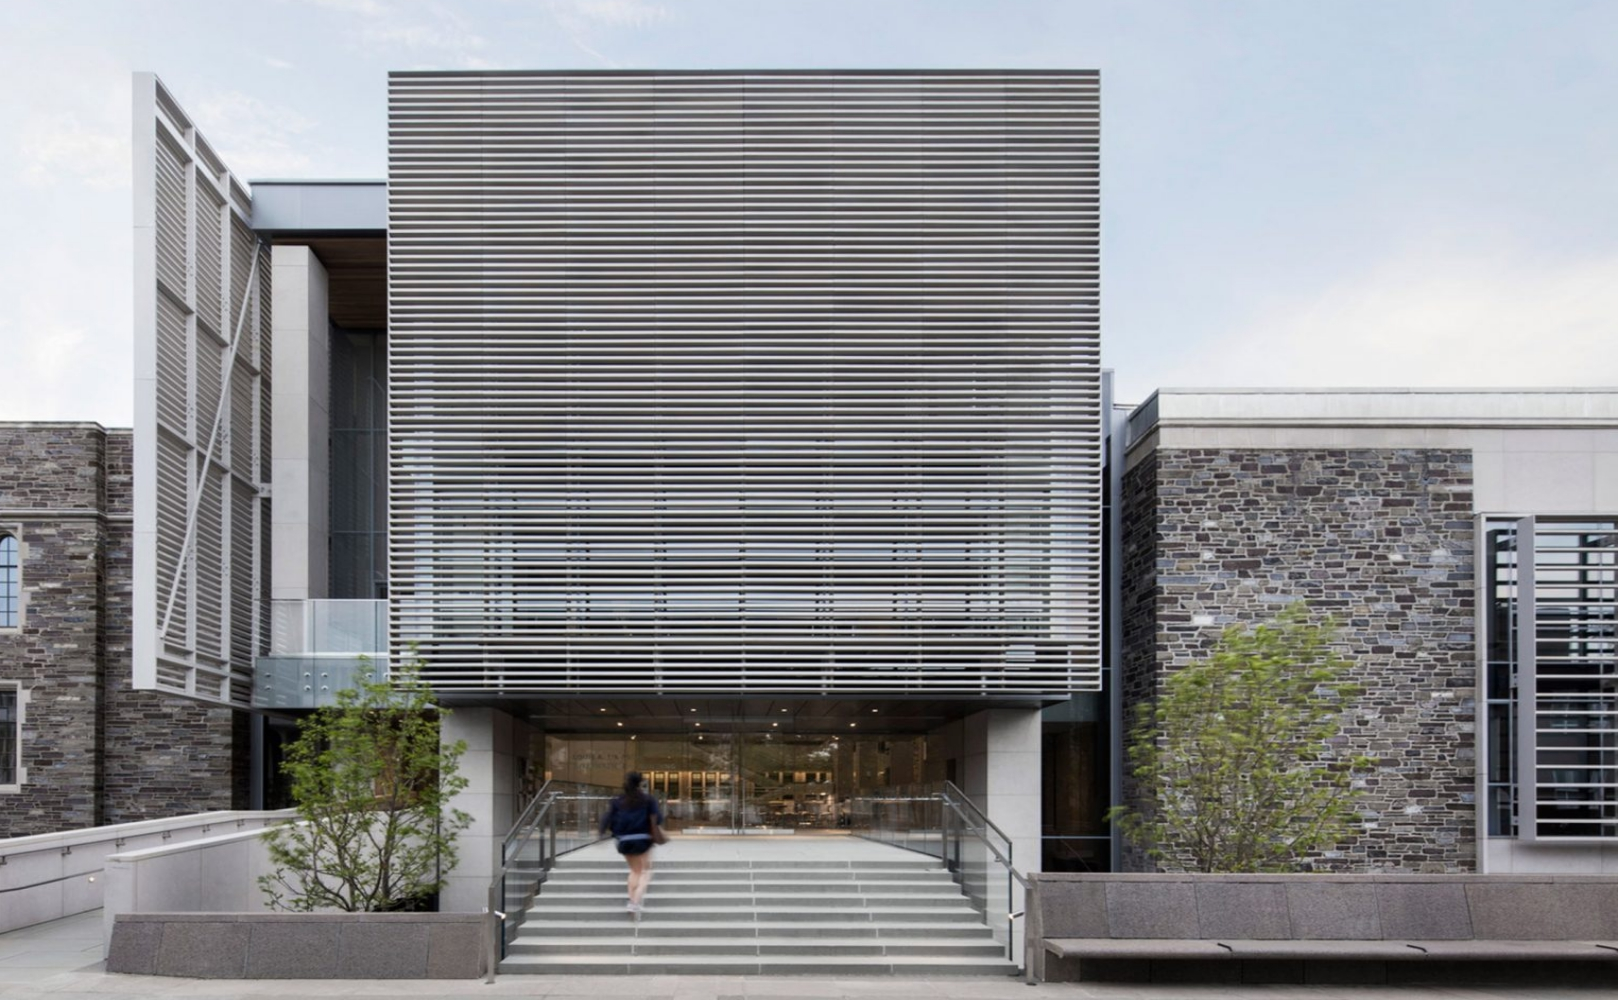 simpson-international-building-princeton-kpmb-architecture-new-jersey-usa_dezeen_2364_col_15-1704x1136